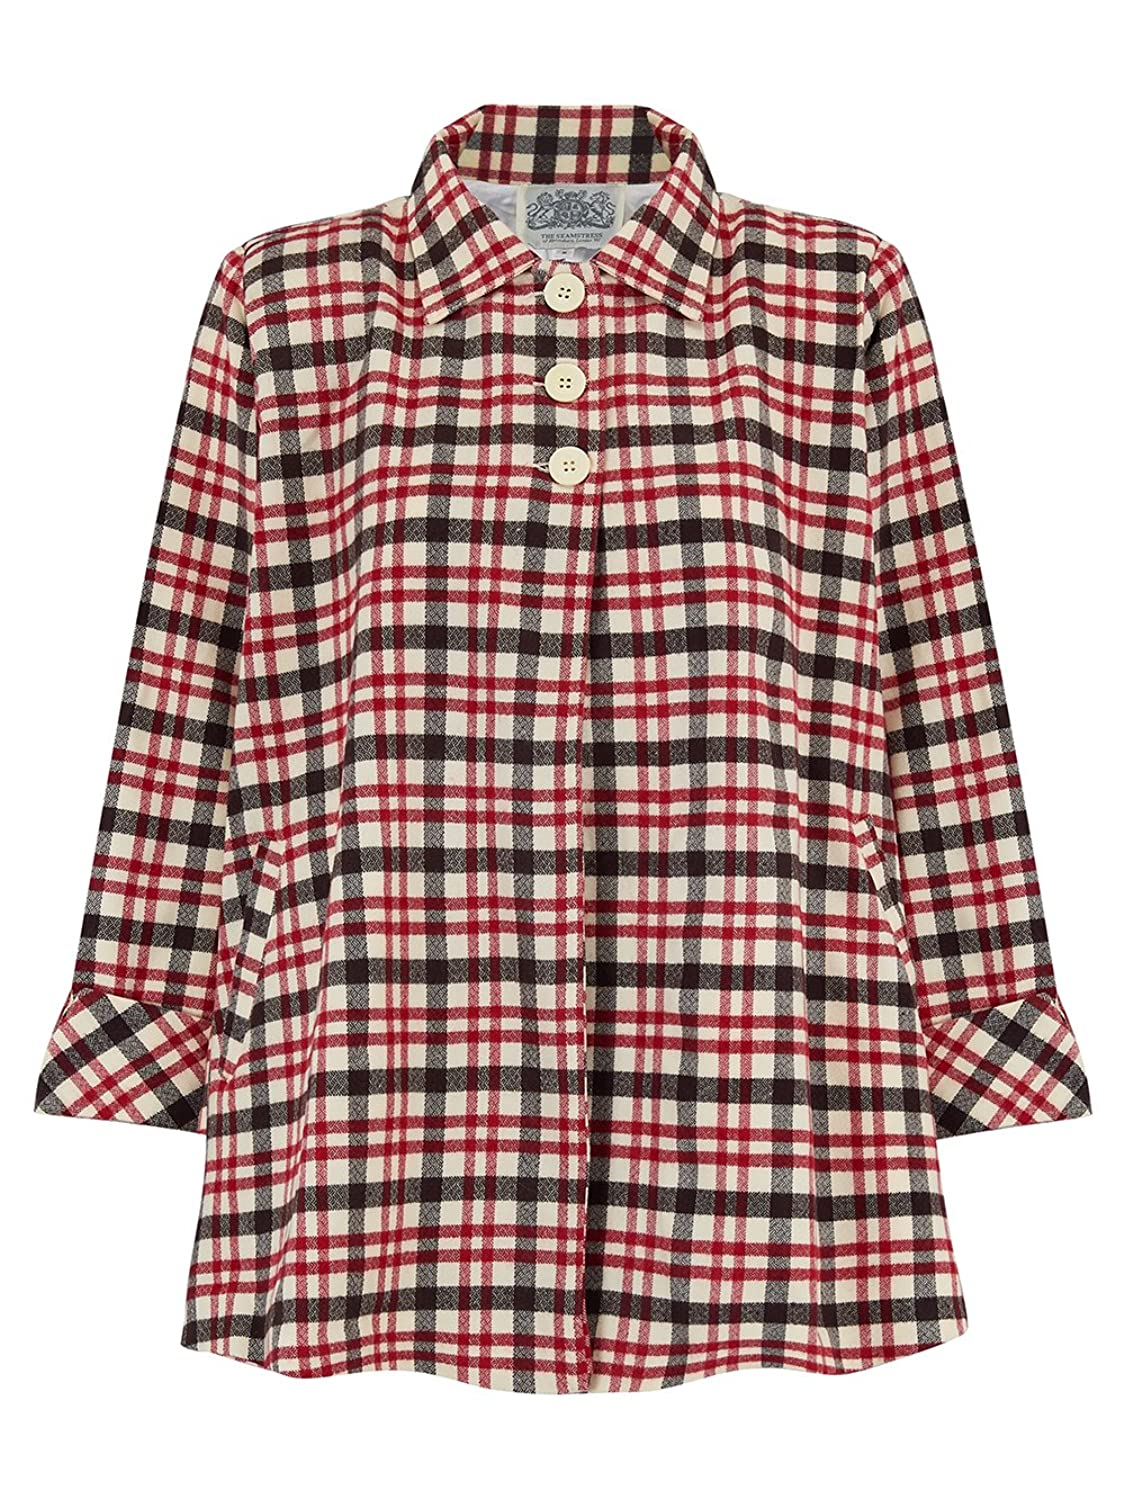 1940s Style Coats and Jackets for Sale 1940s Inspired Vintage Swing Jacket in Red/White Check by The Seamstress of Bloomsbury £125.00 AT vintagedancer.com